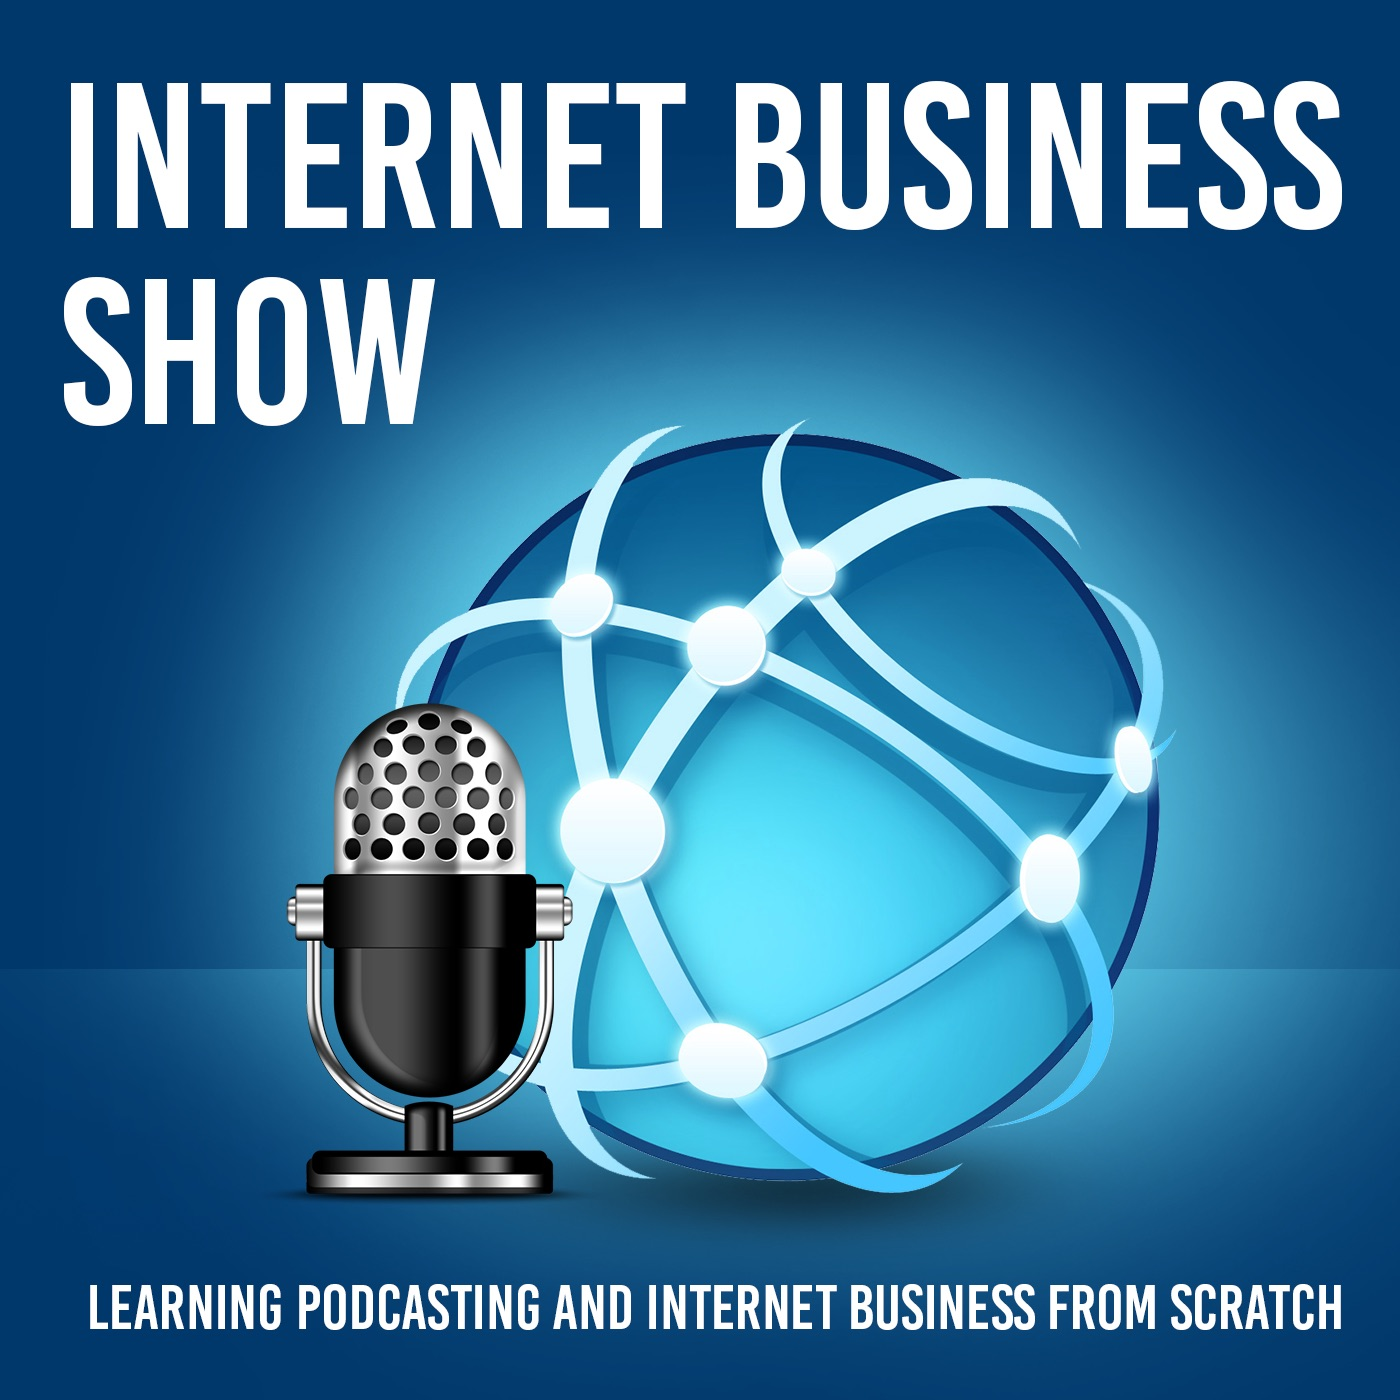 Internet Business Show